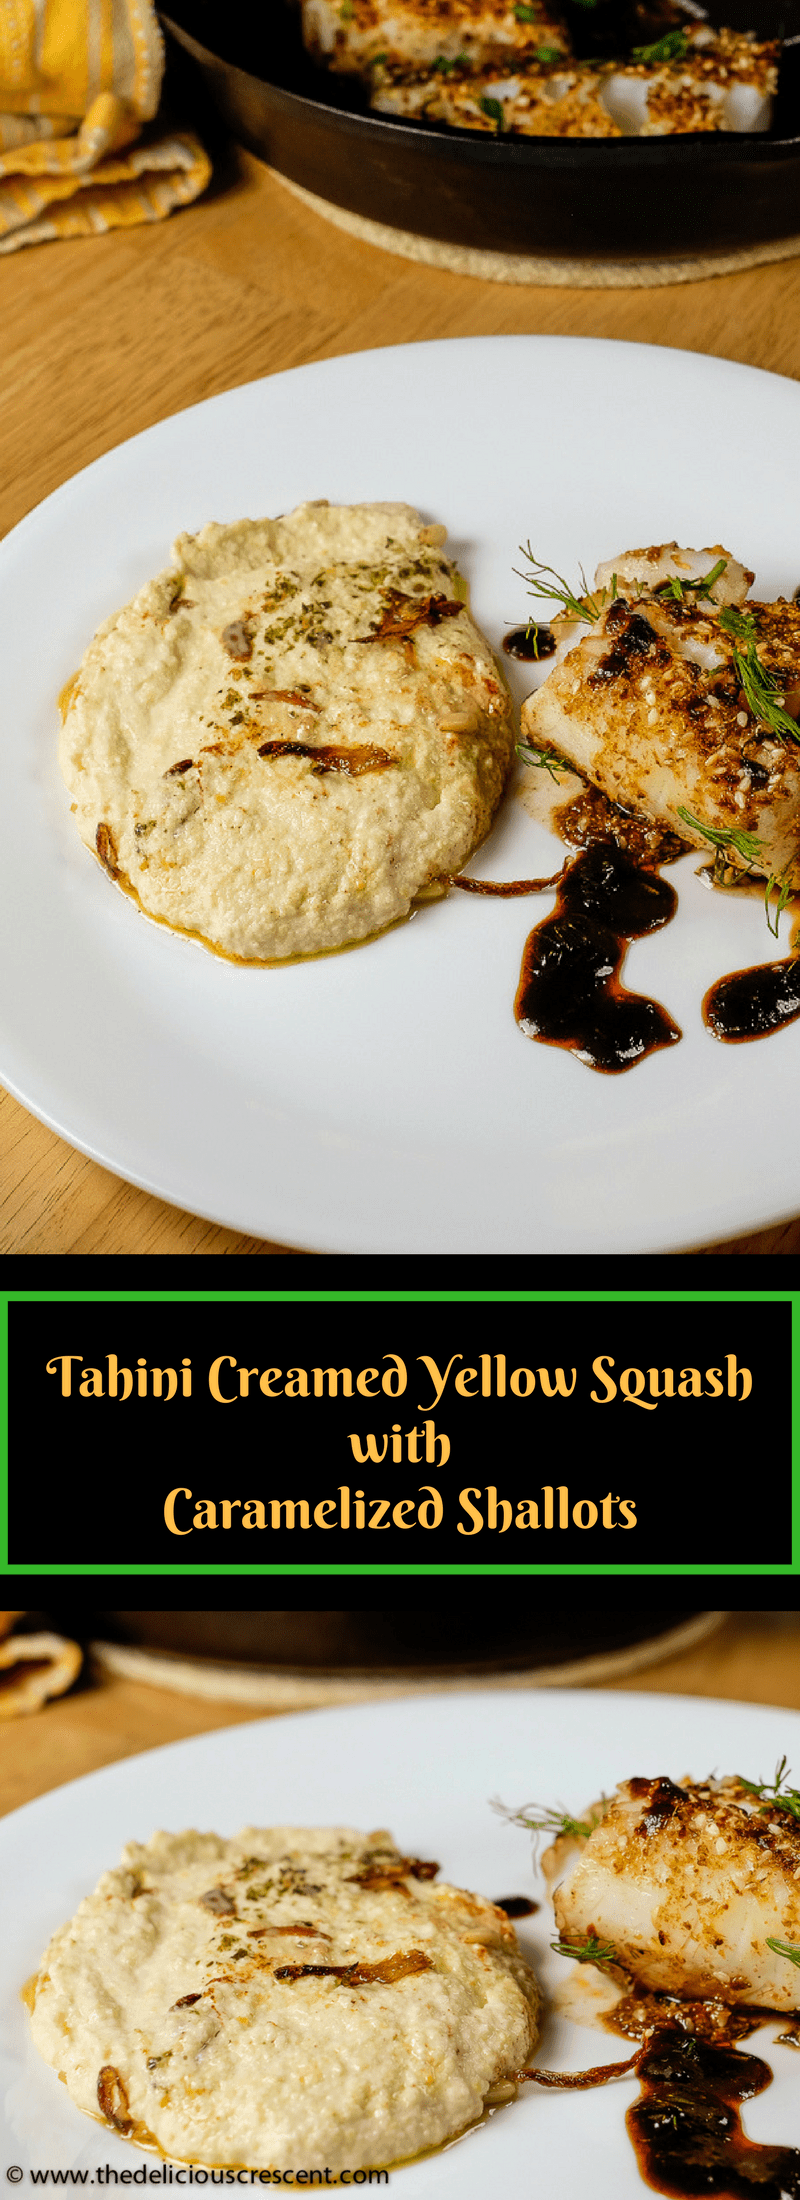 Tahini Creamed Yellow Squash with Caramelized Shallots – a flavor and nutrient packed alternative to mashed potatoes that is lower in carbs, high in fiber and healthy fats!